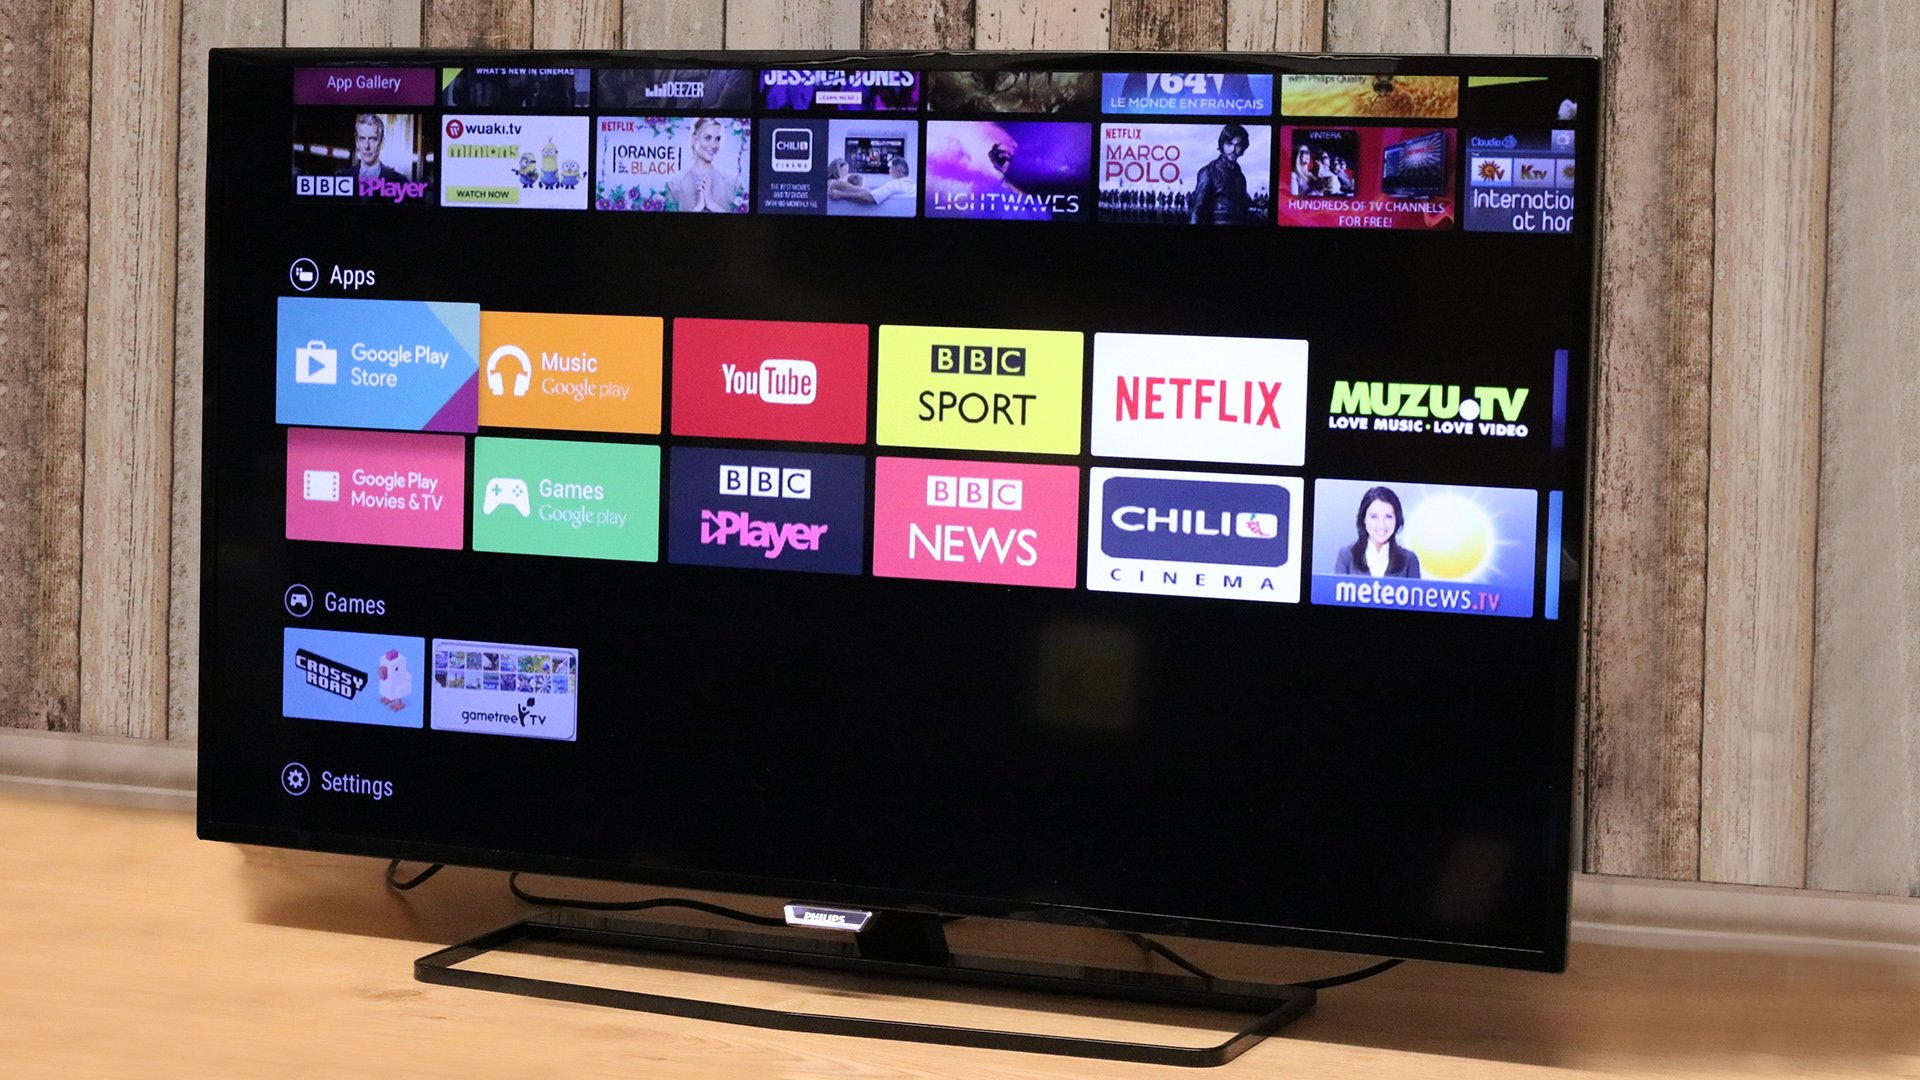 Philips 6400 series 4K TV (40PUT6400) review | Expert Reviews